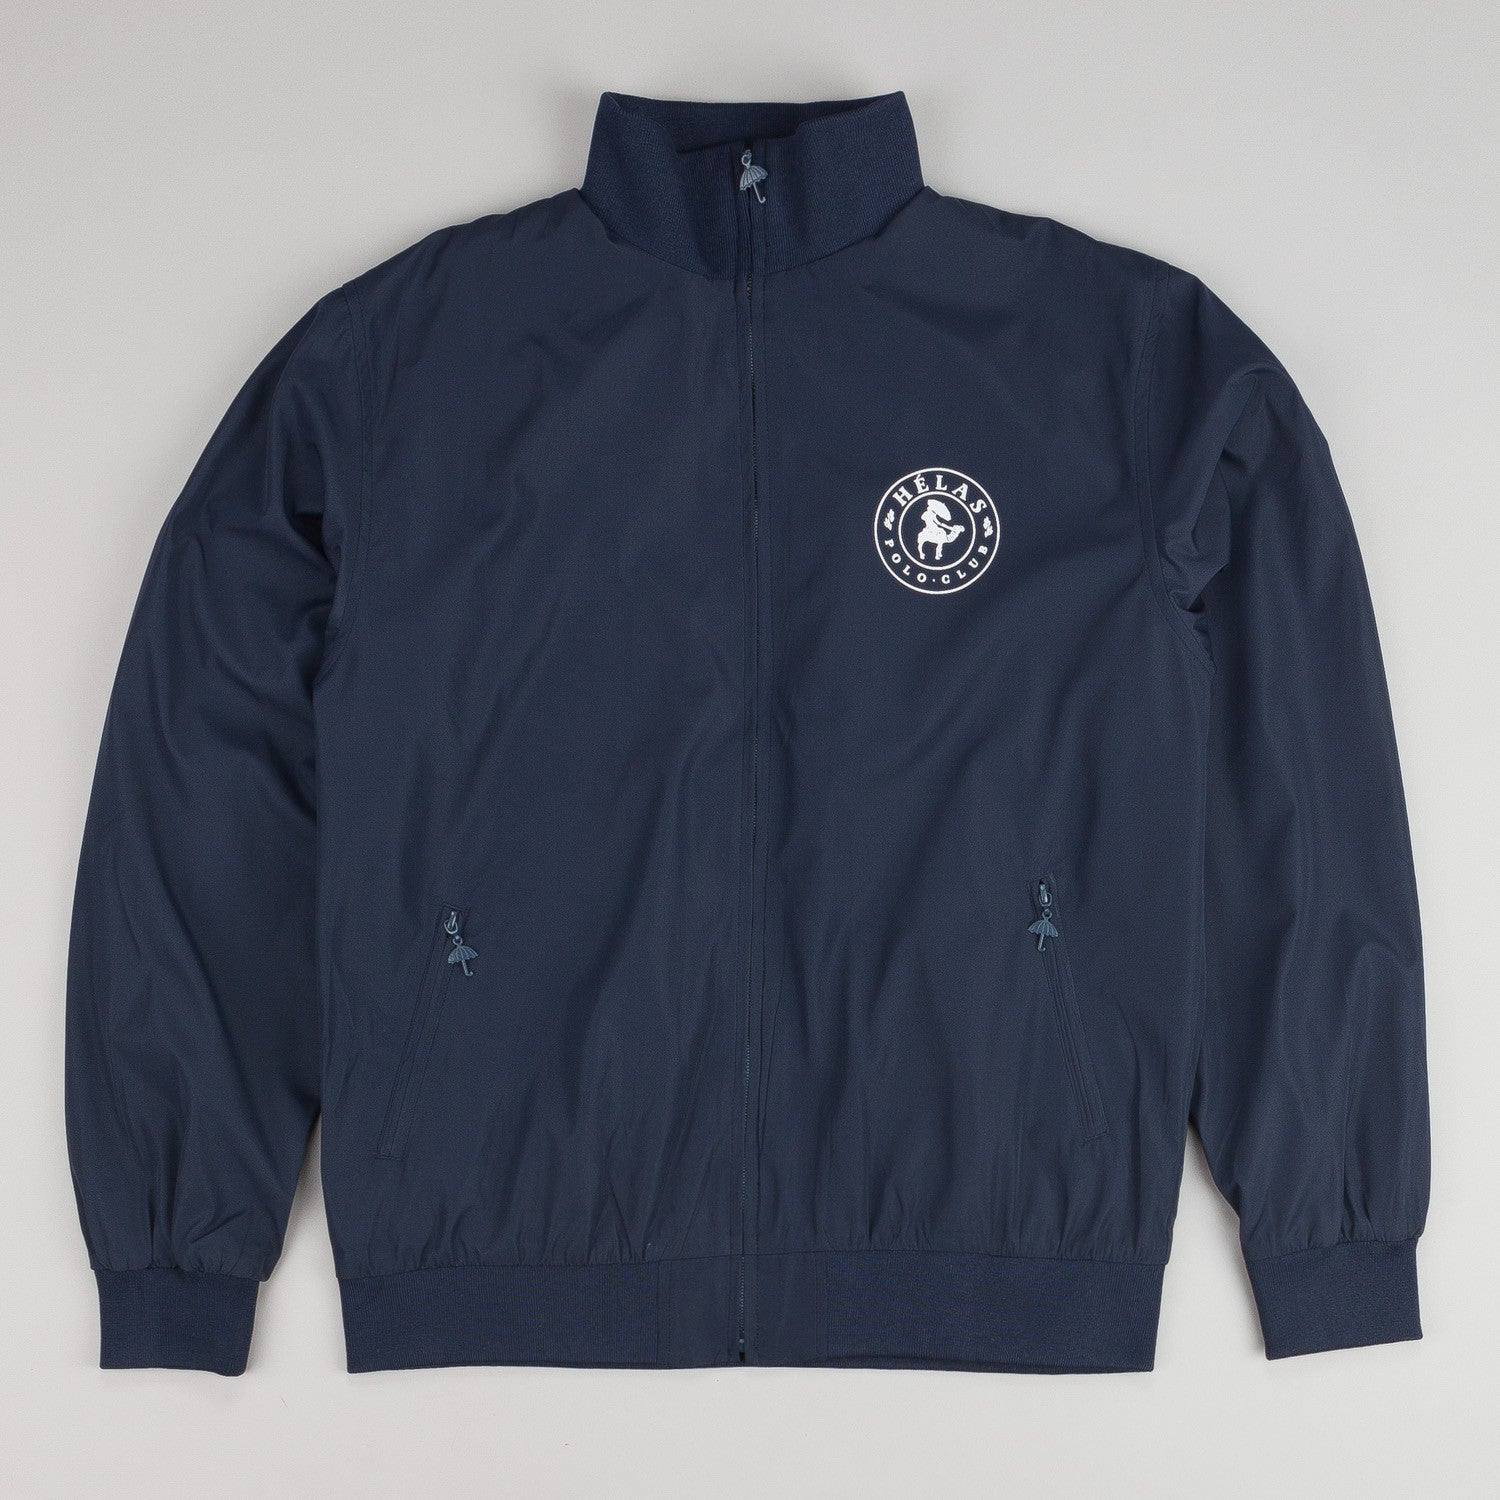 Helas Polo Club Jacket